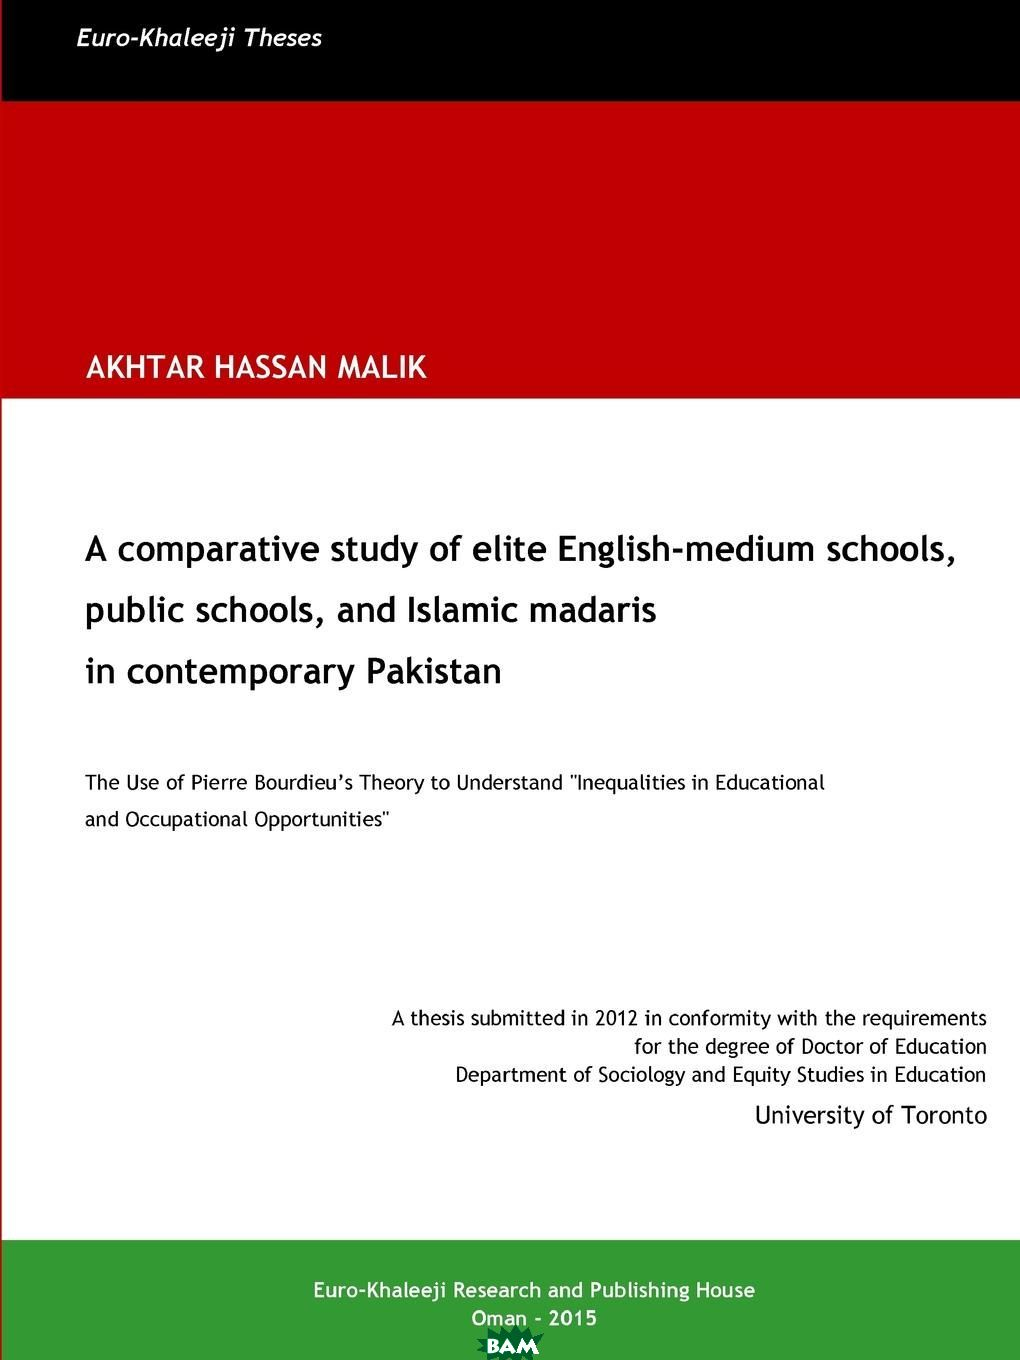 A comparative study of elite English-medium schools, public schools, and Islamic madaris in contemporary Pakistan